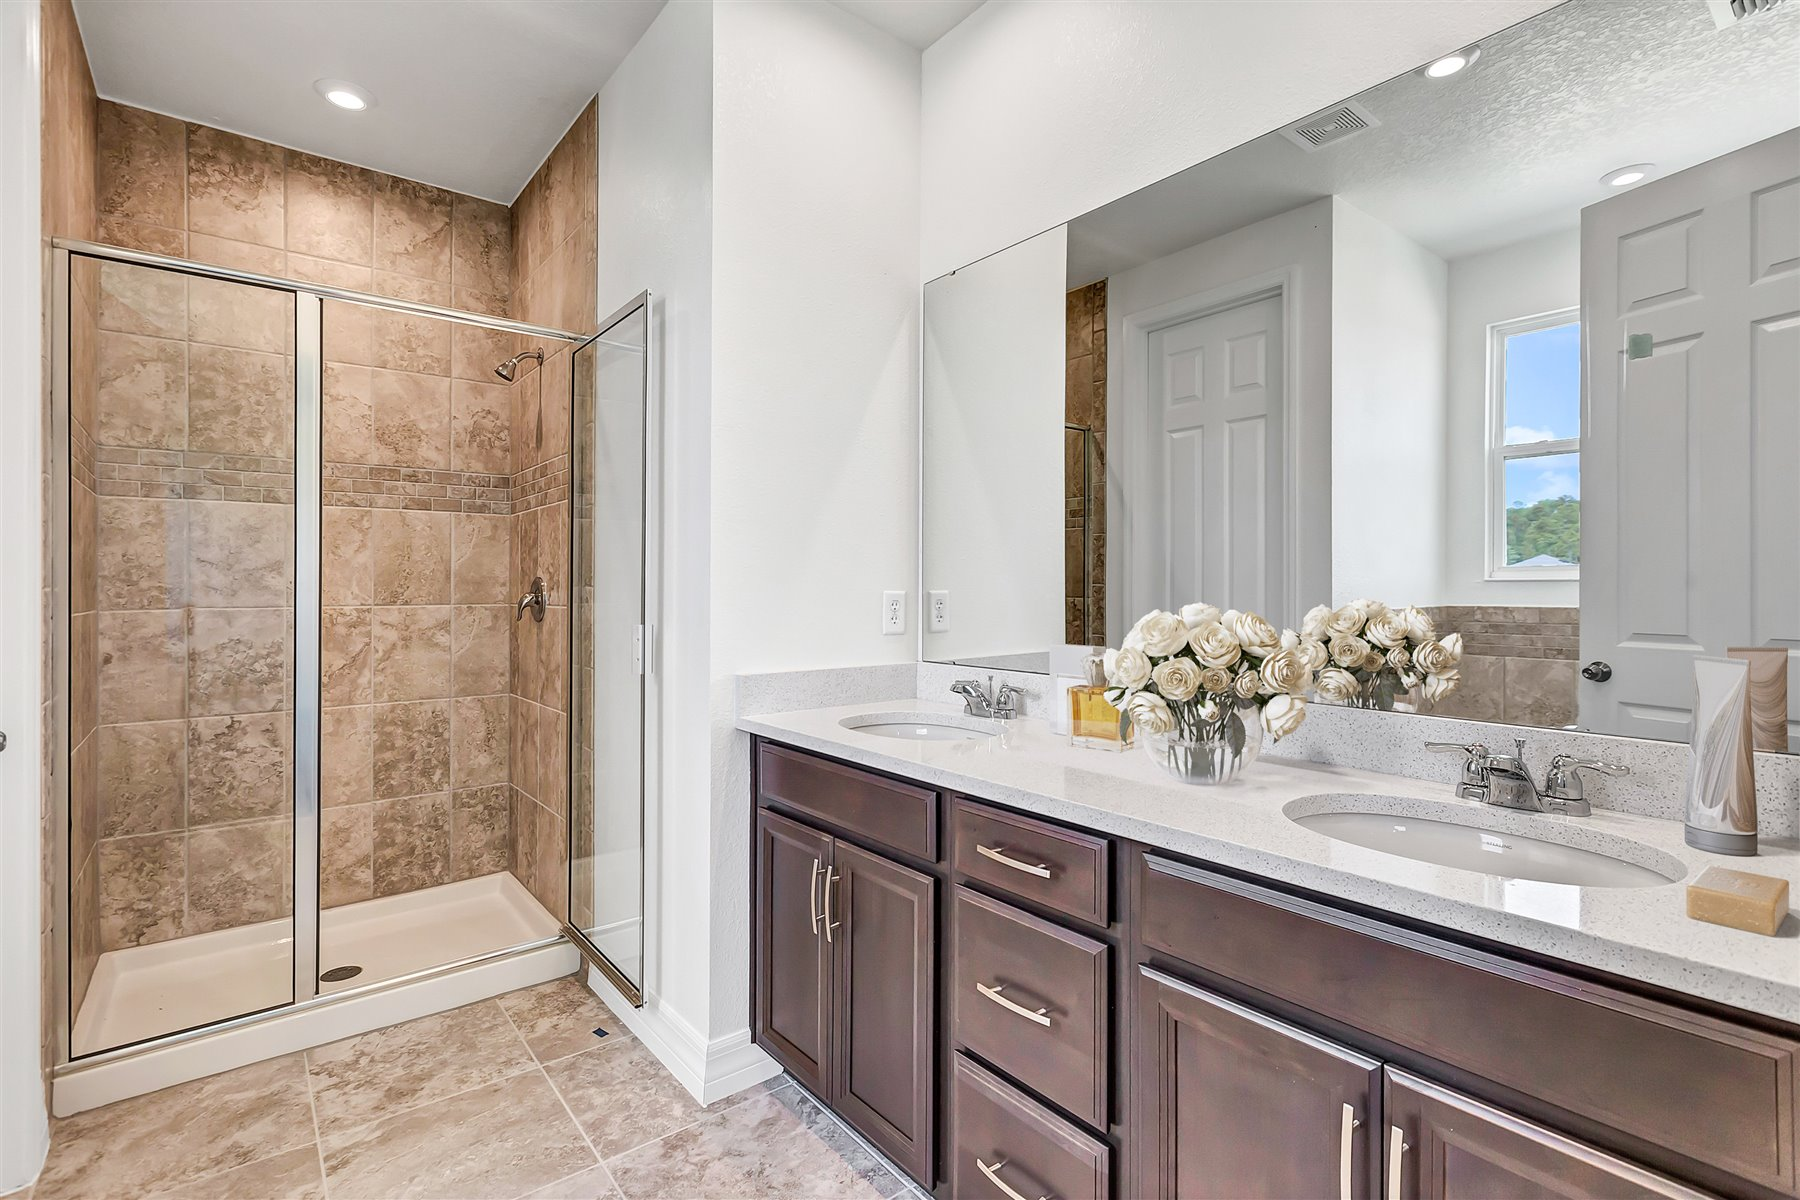 Newport Plan Bath at Meridian Parks in Orlando Florida by Mattamy Homes